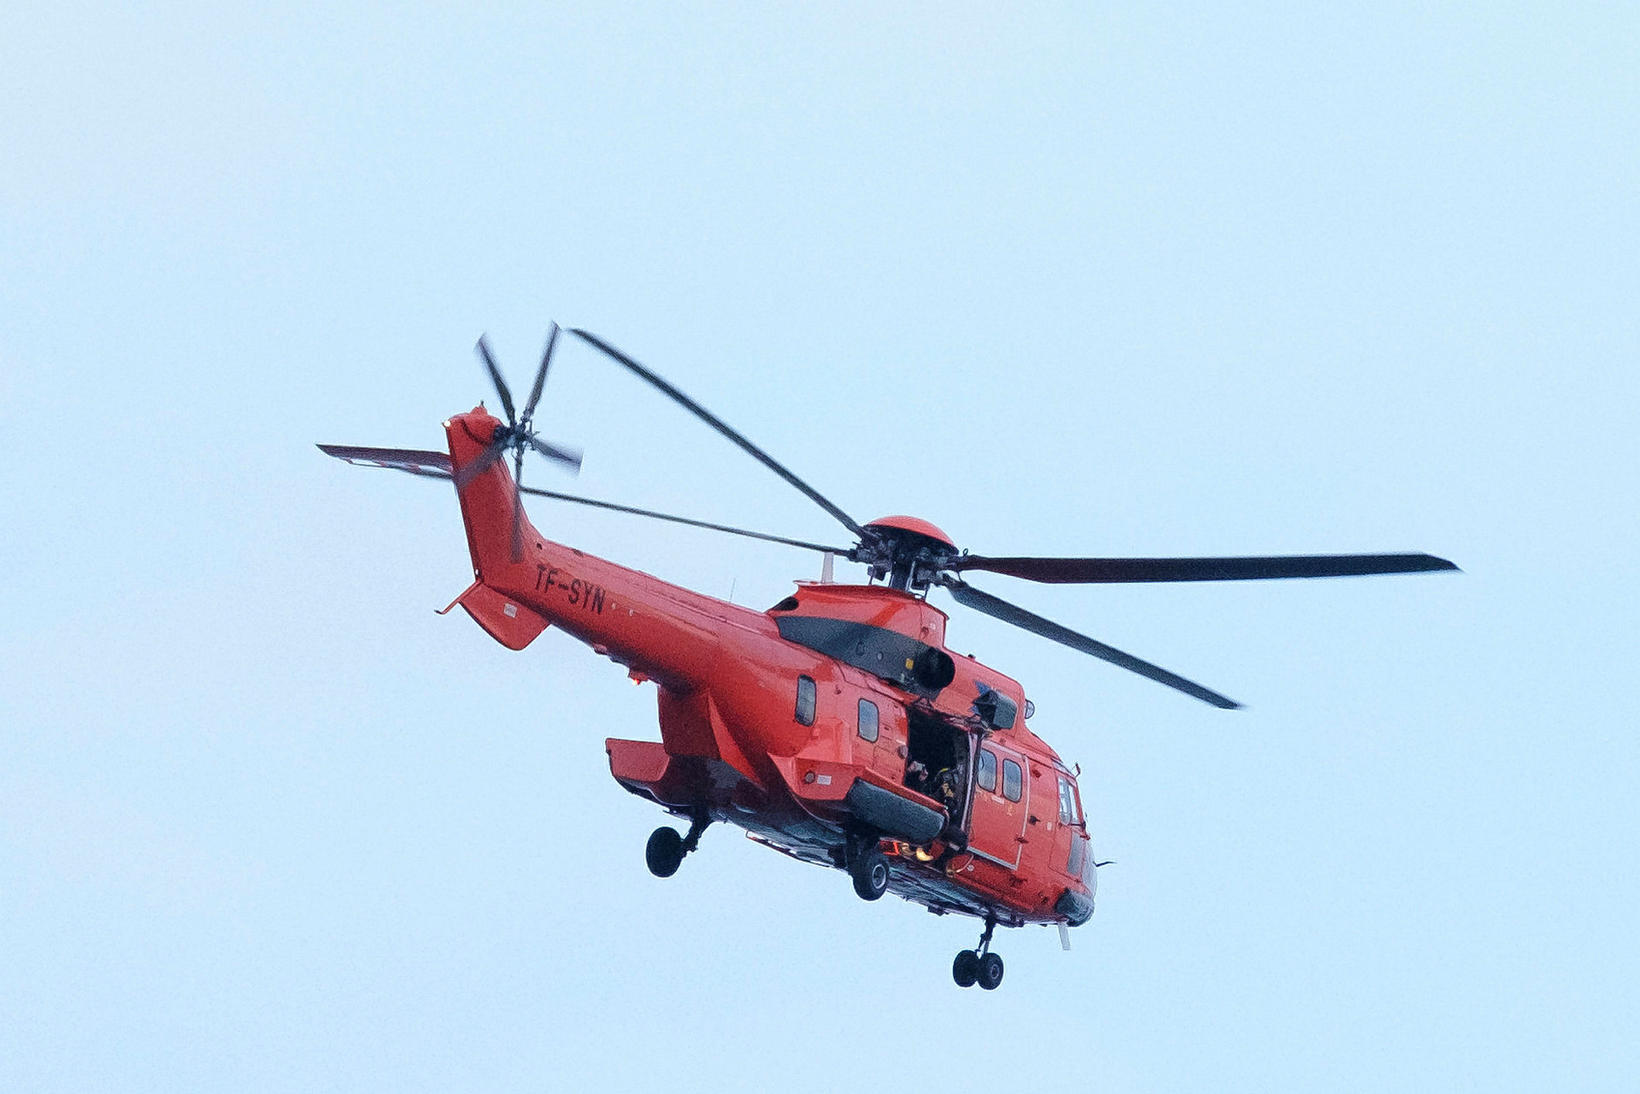 The Icelandic Coast Guard helicopter was called off, because a ...